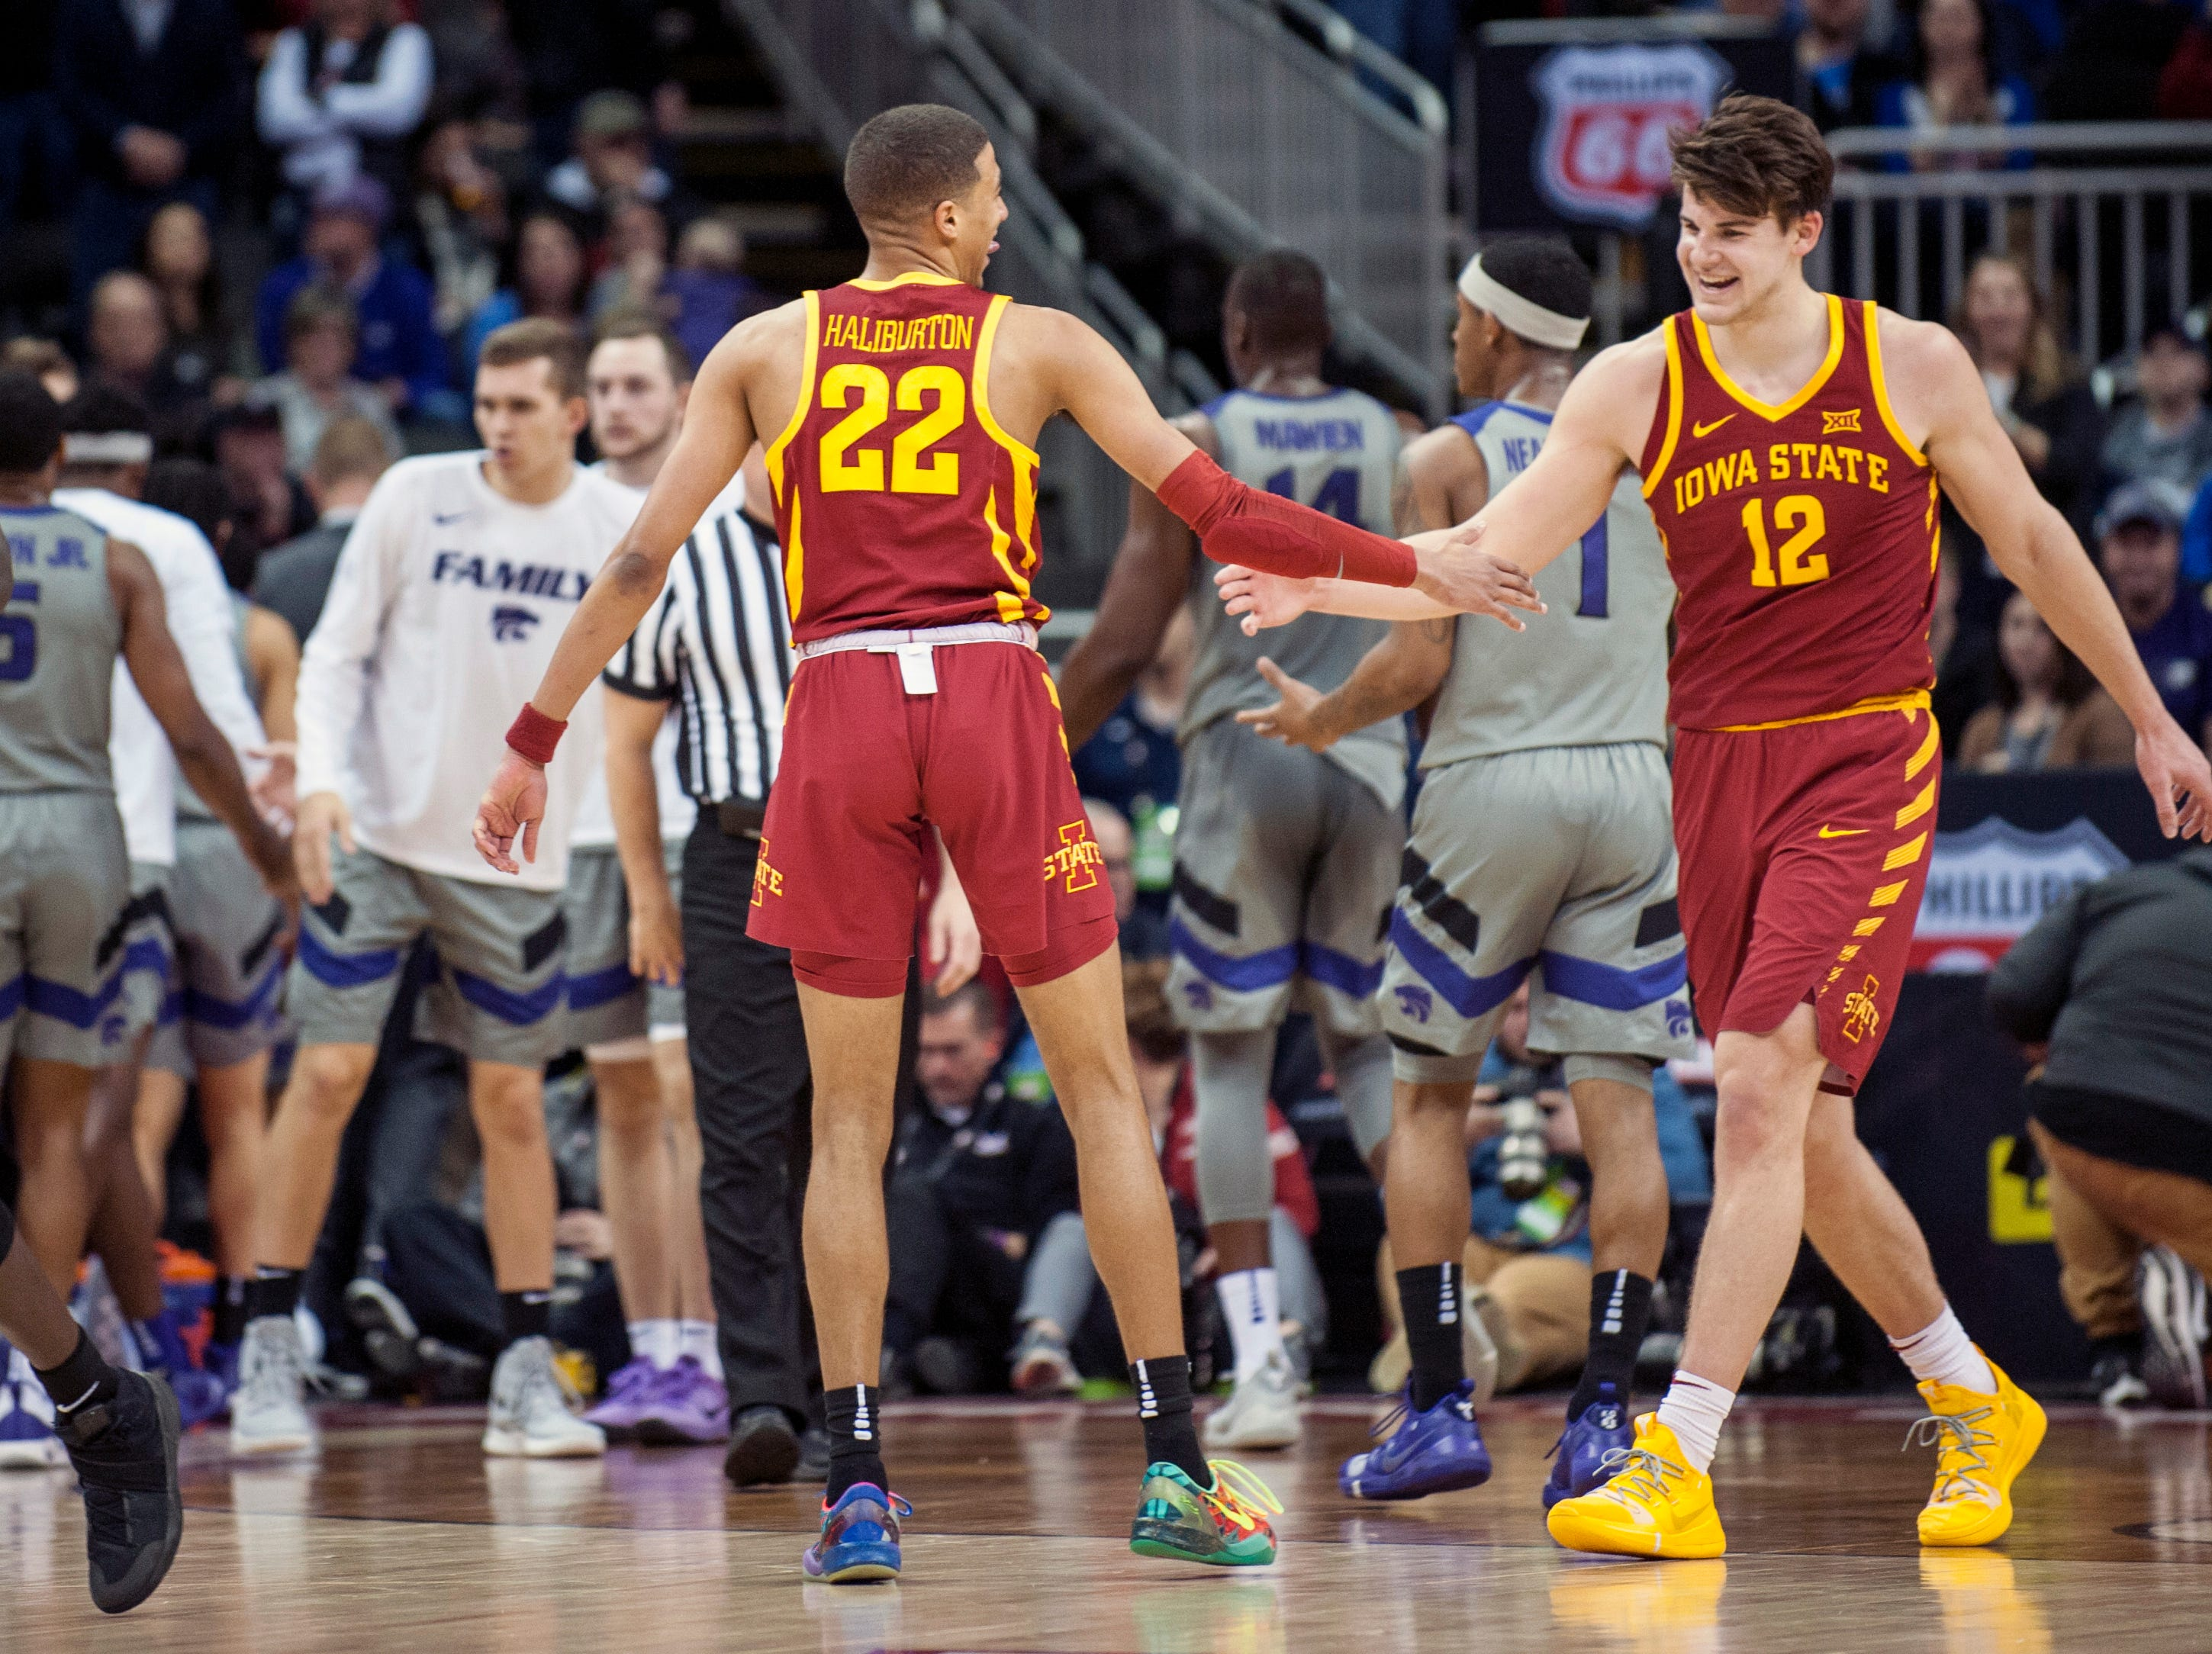 Mar 15, 2019; Kansas City, MO, USA; Iowa State Cyclones guard Tyrese Haliburton (22) and Iowa State Cyclones forward Michael Jacobson (12) high-five during the first half against the Kansas State Wildcats in the semifinals of the Big 12 conference tournament at Sprint Center. Mandatory Credit: Amy Kontras-USA TODAY Sports